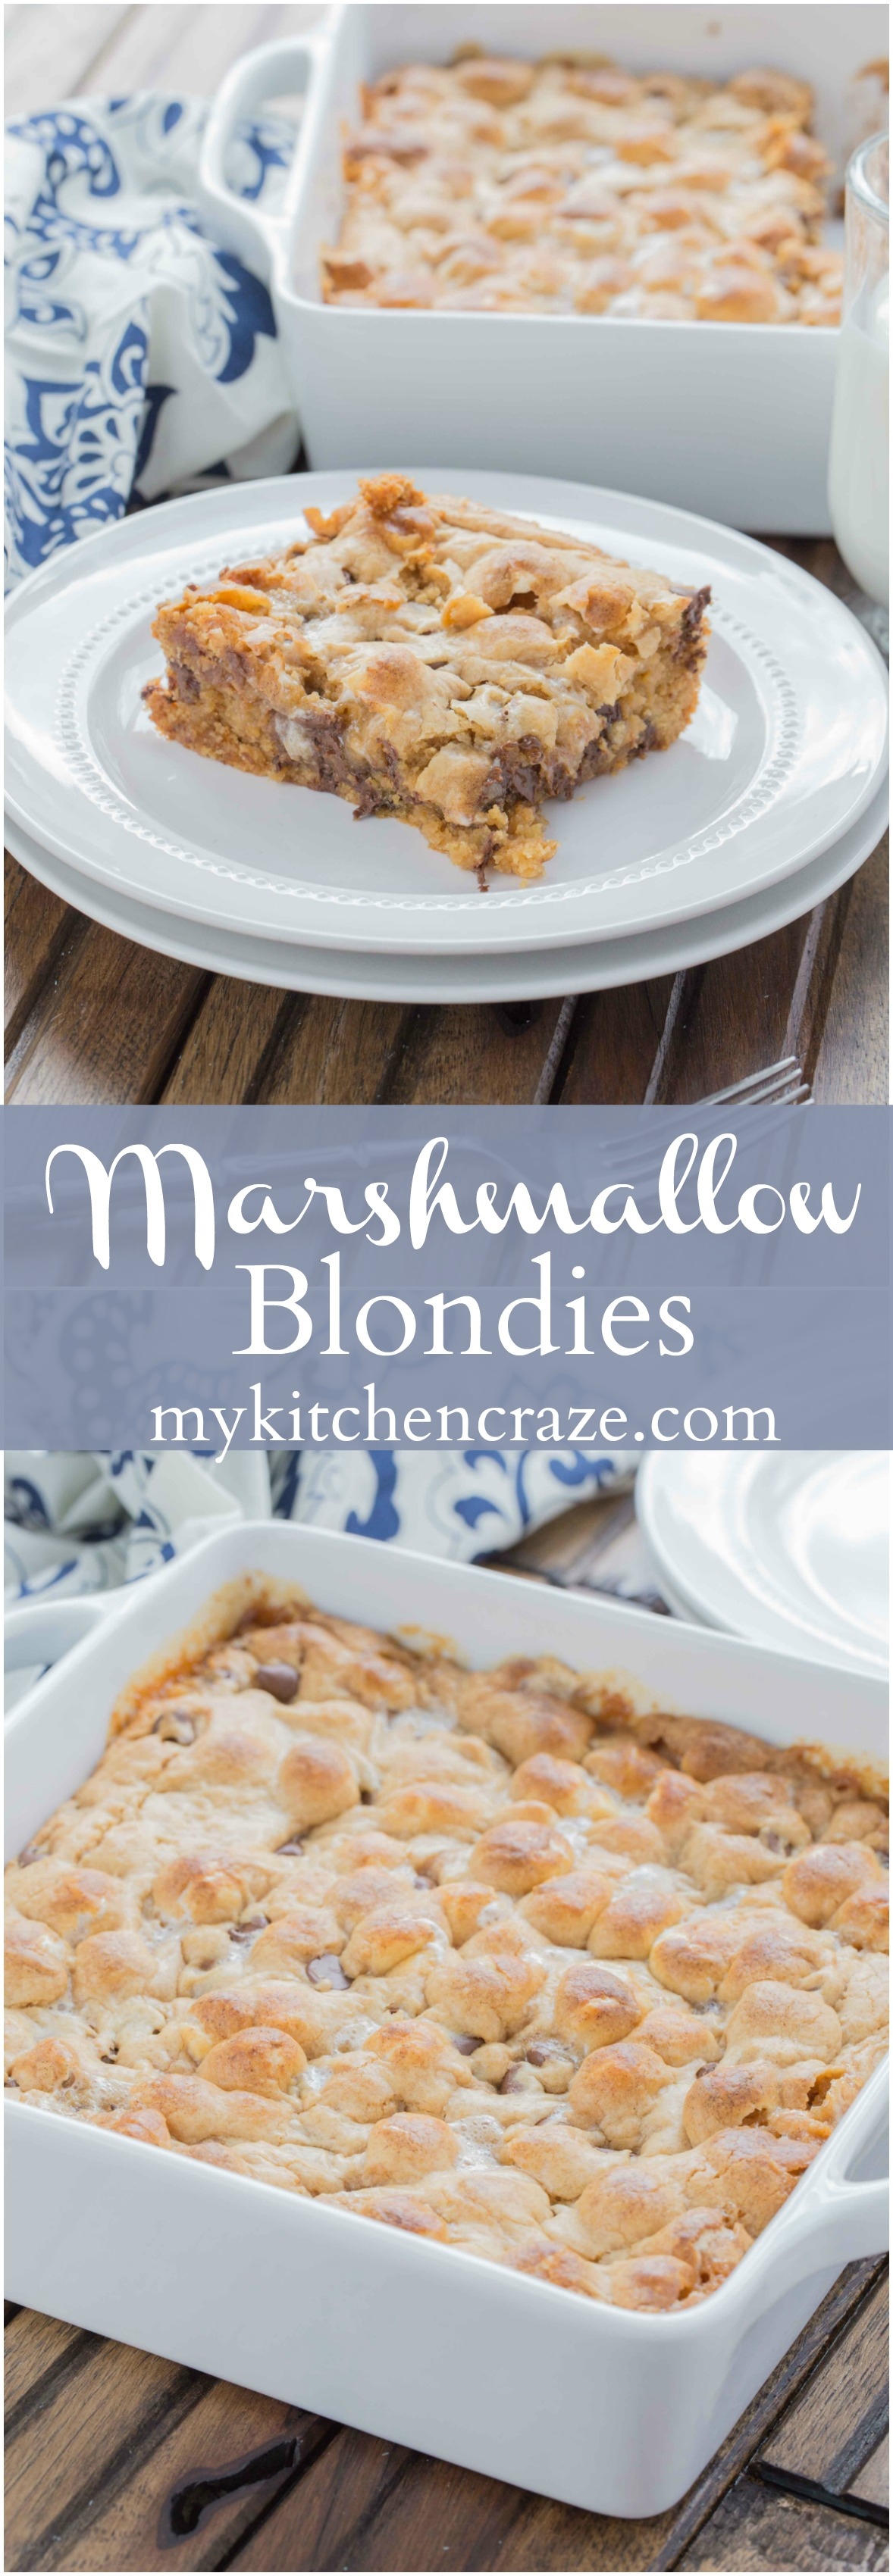 Marshmallow Blondies ~ mykitchencraze.com ~ Need a tasty and quick dessert? These Marshmallow Blondies are it. Filled with peanut butter chips, chocolate chips, mini marshmallows, baked to perfection and voila, you have yourself a tasty treat!